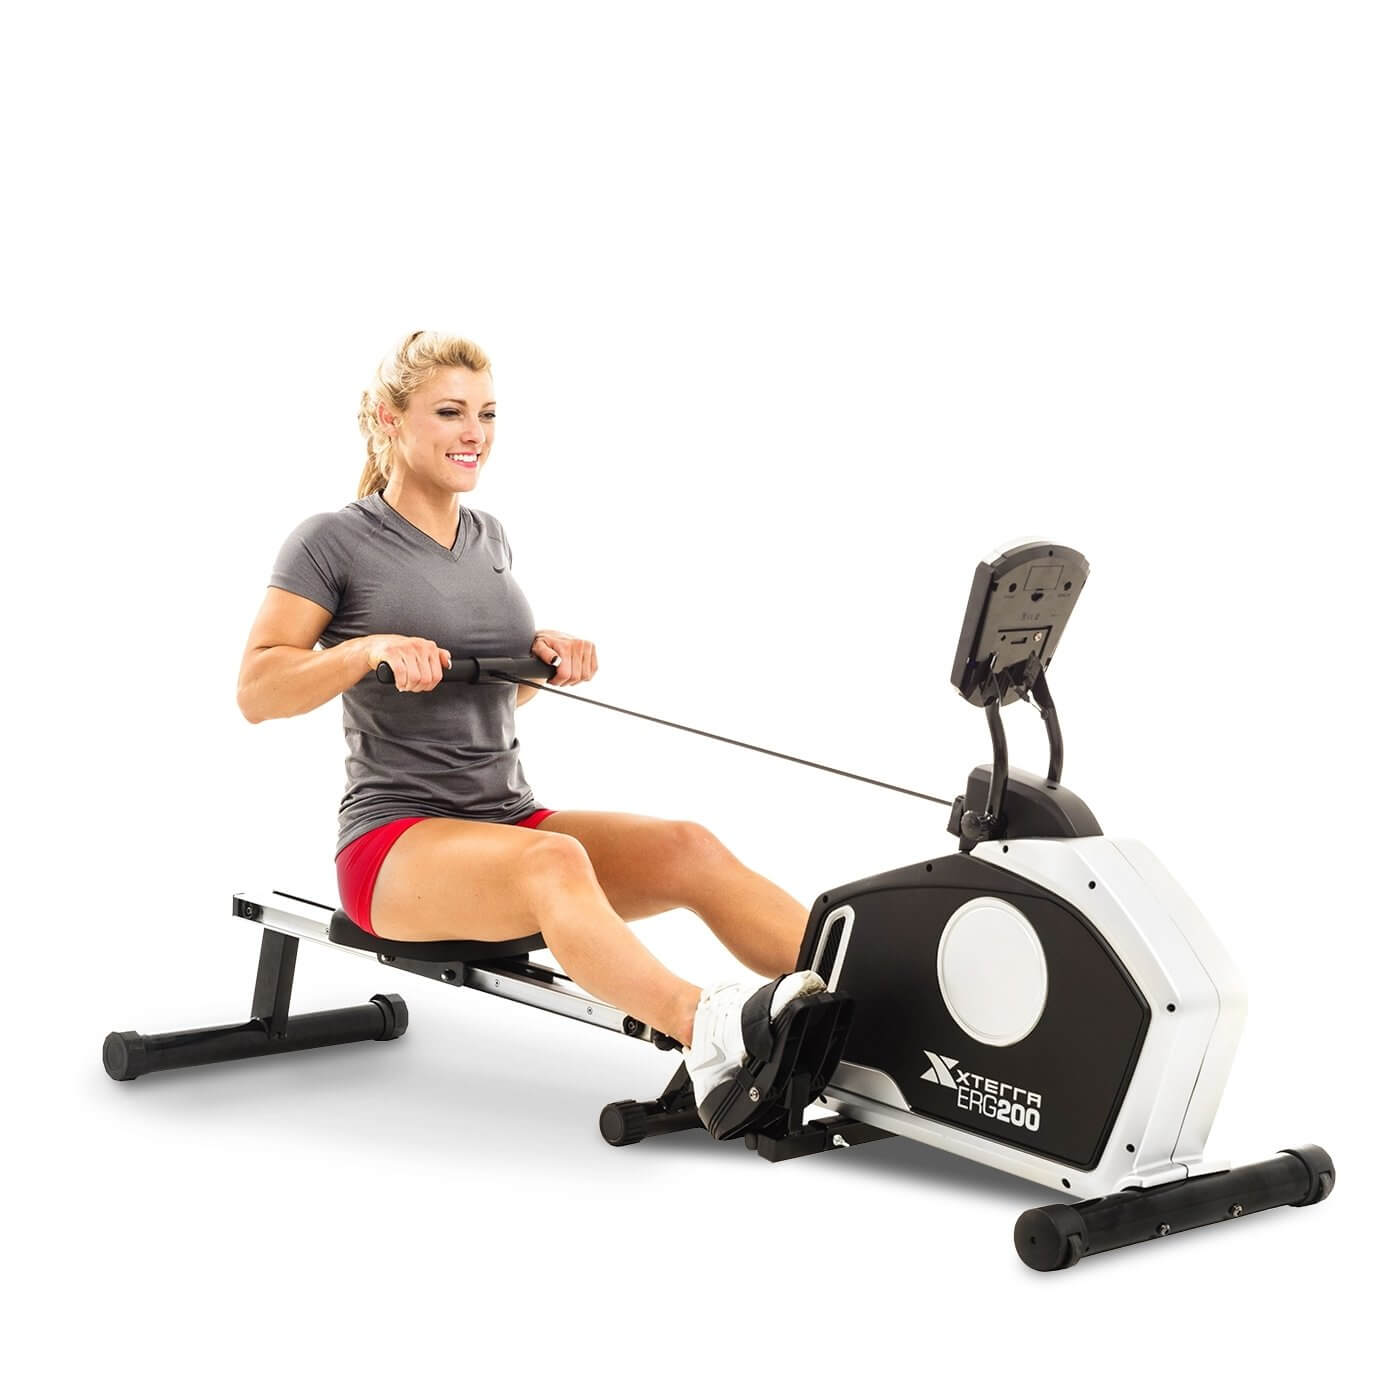 Xterra ERG200 rowing machine